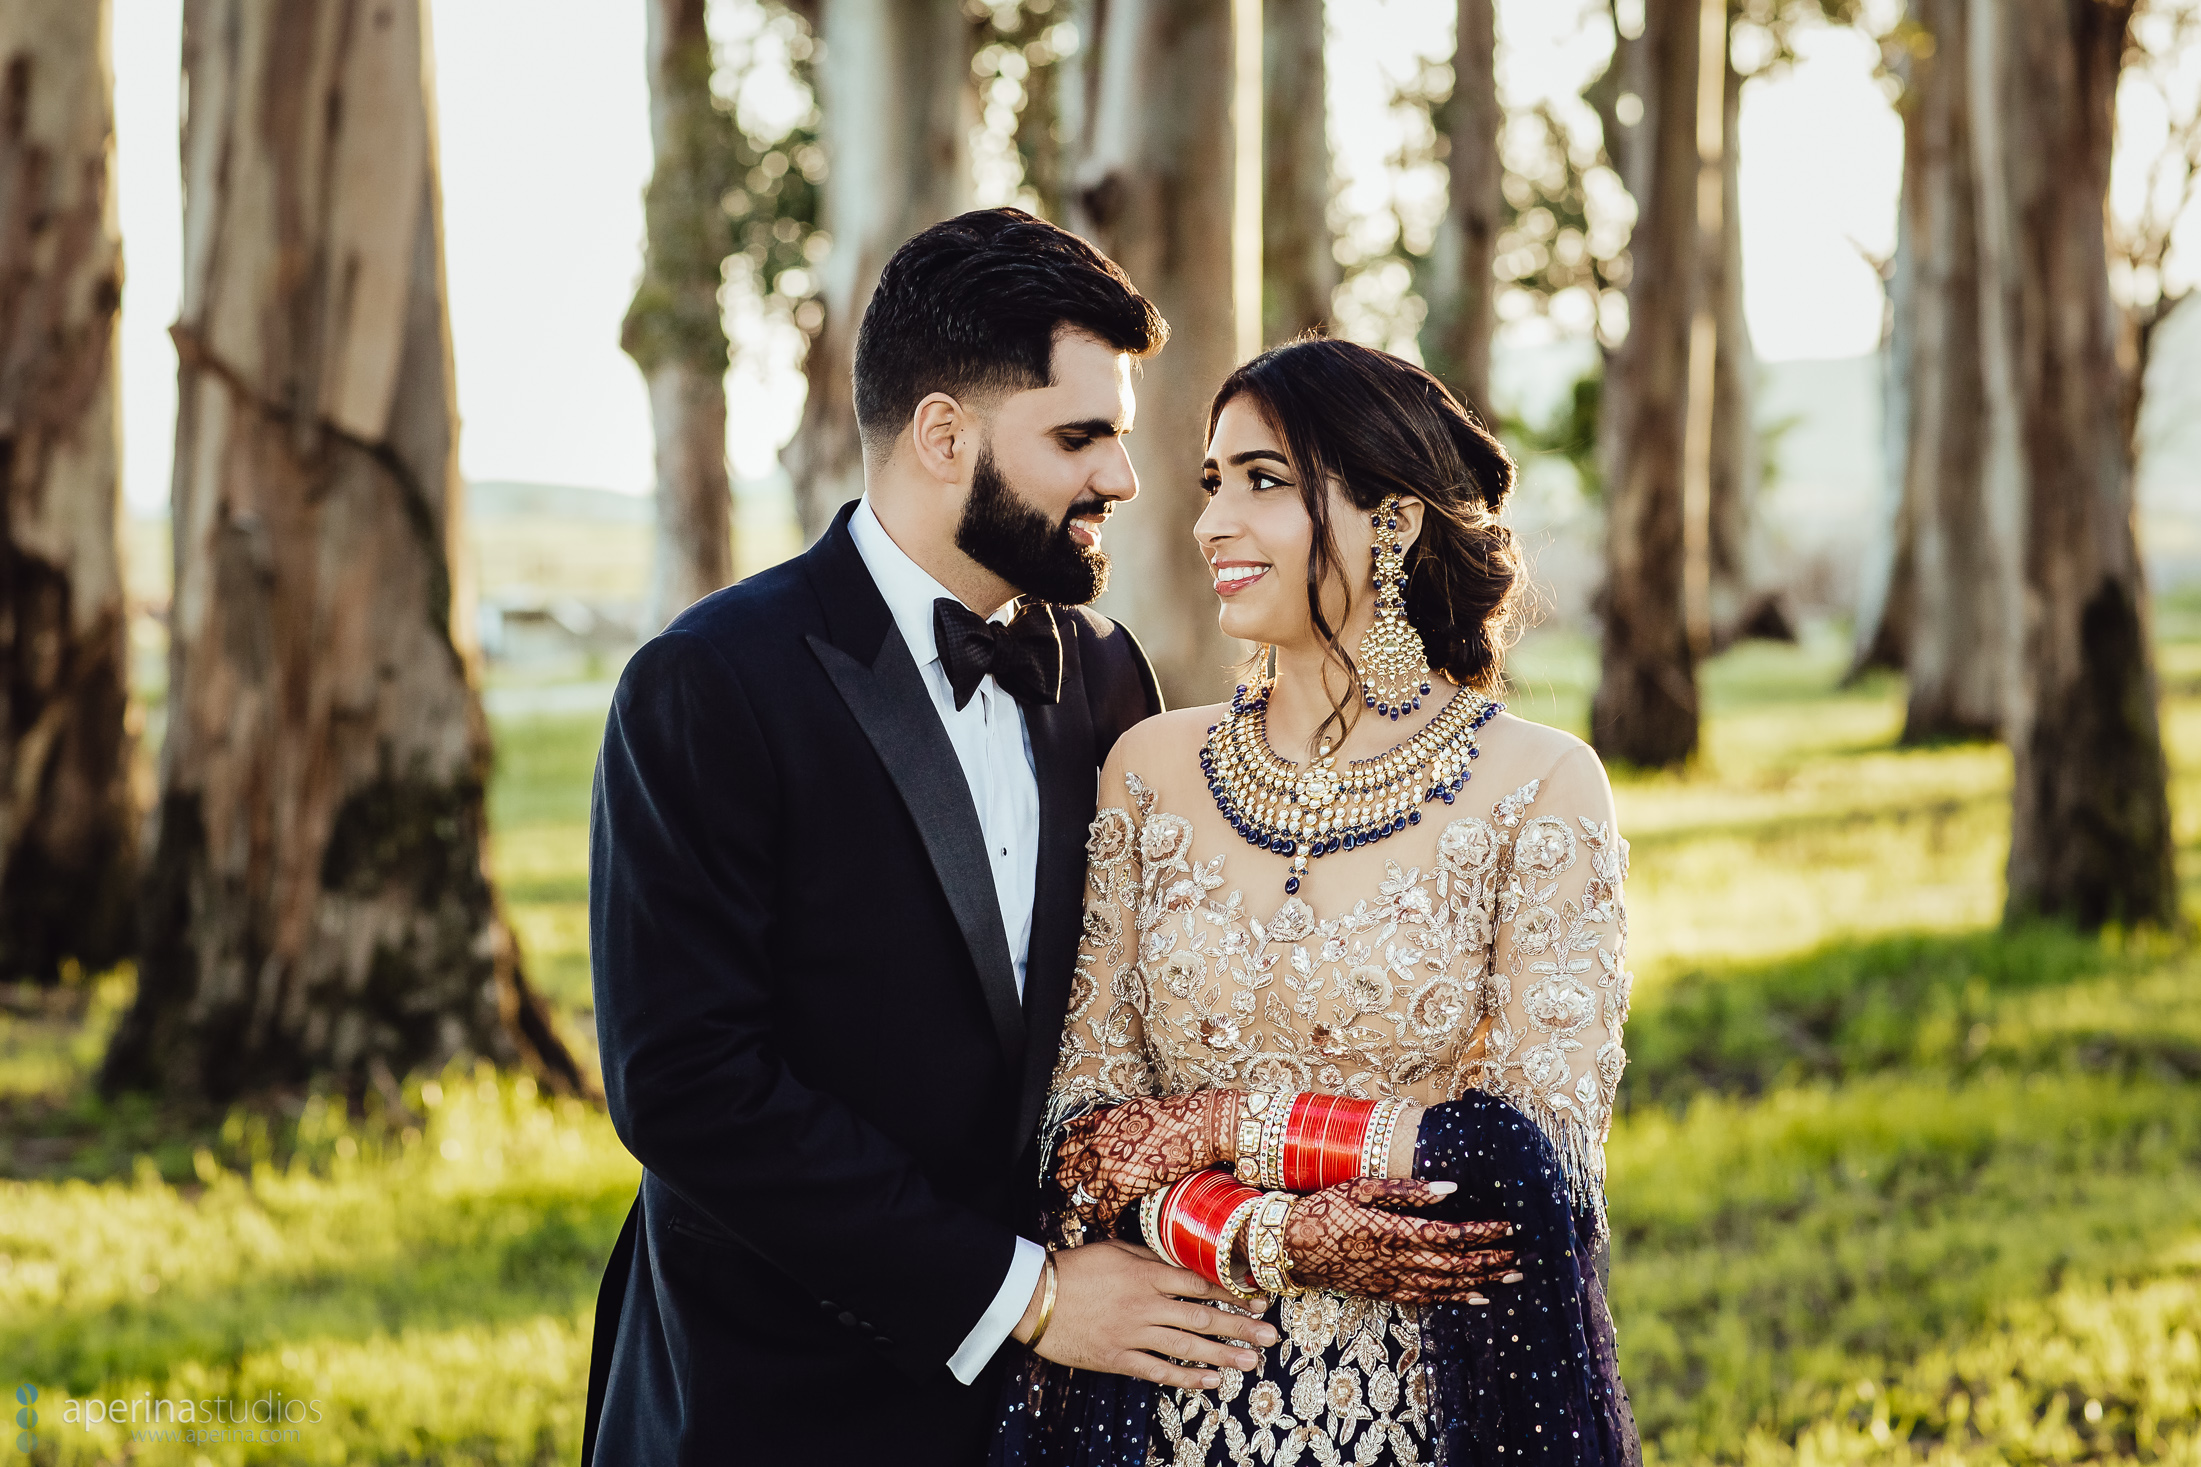 Wedding Reception Portraits - Eucalyptus Trees